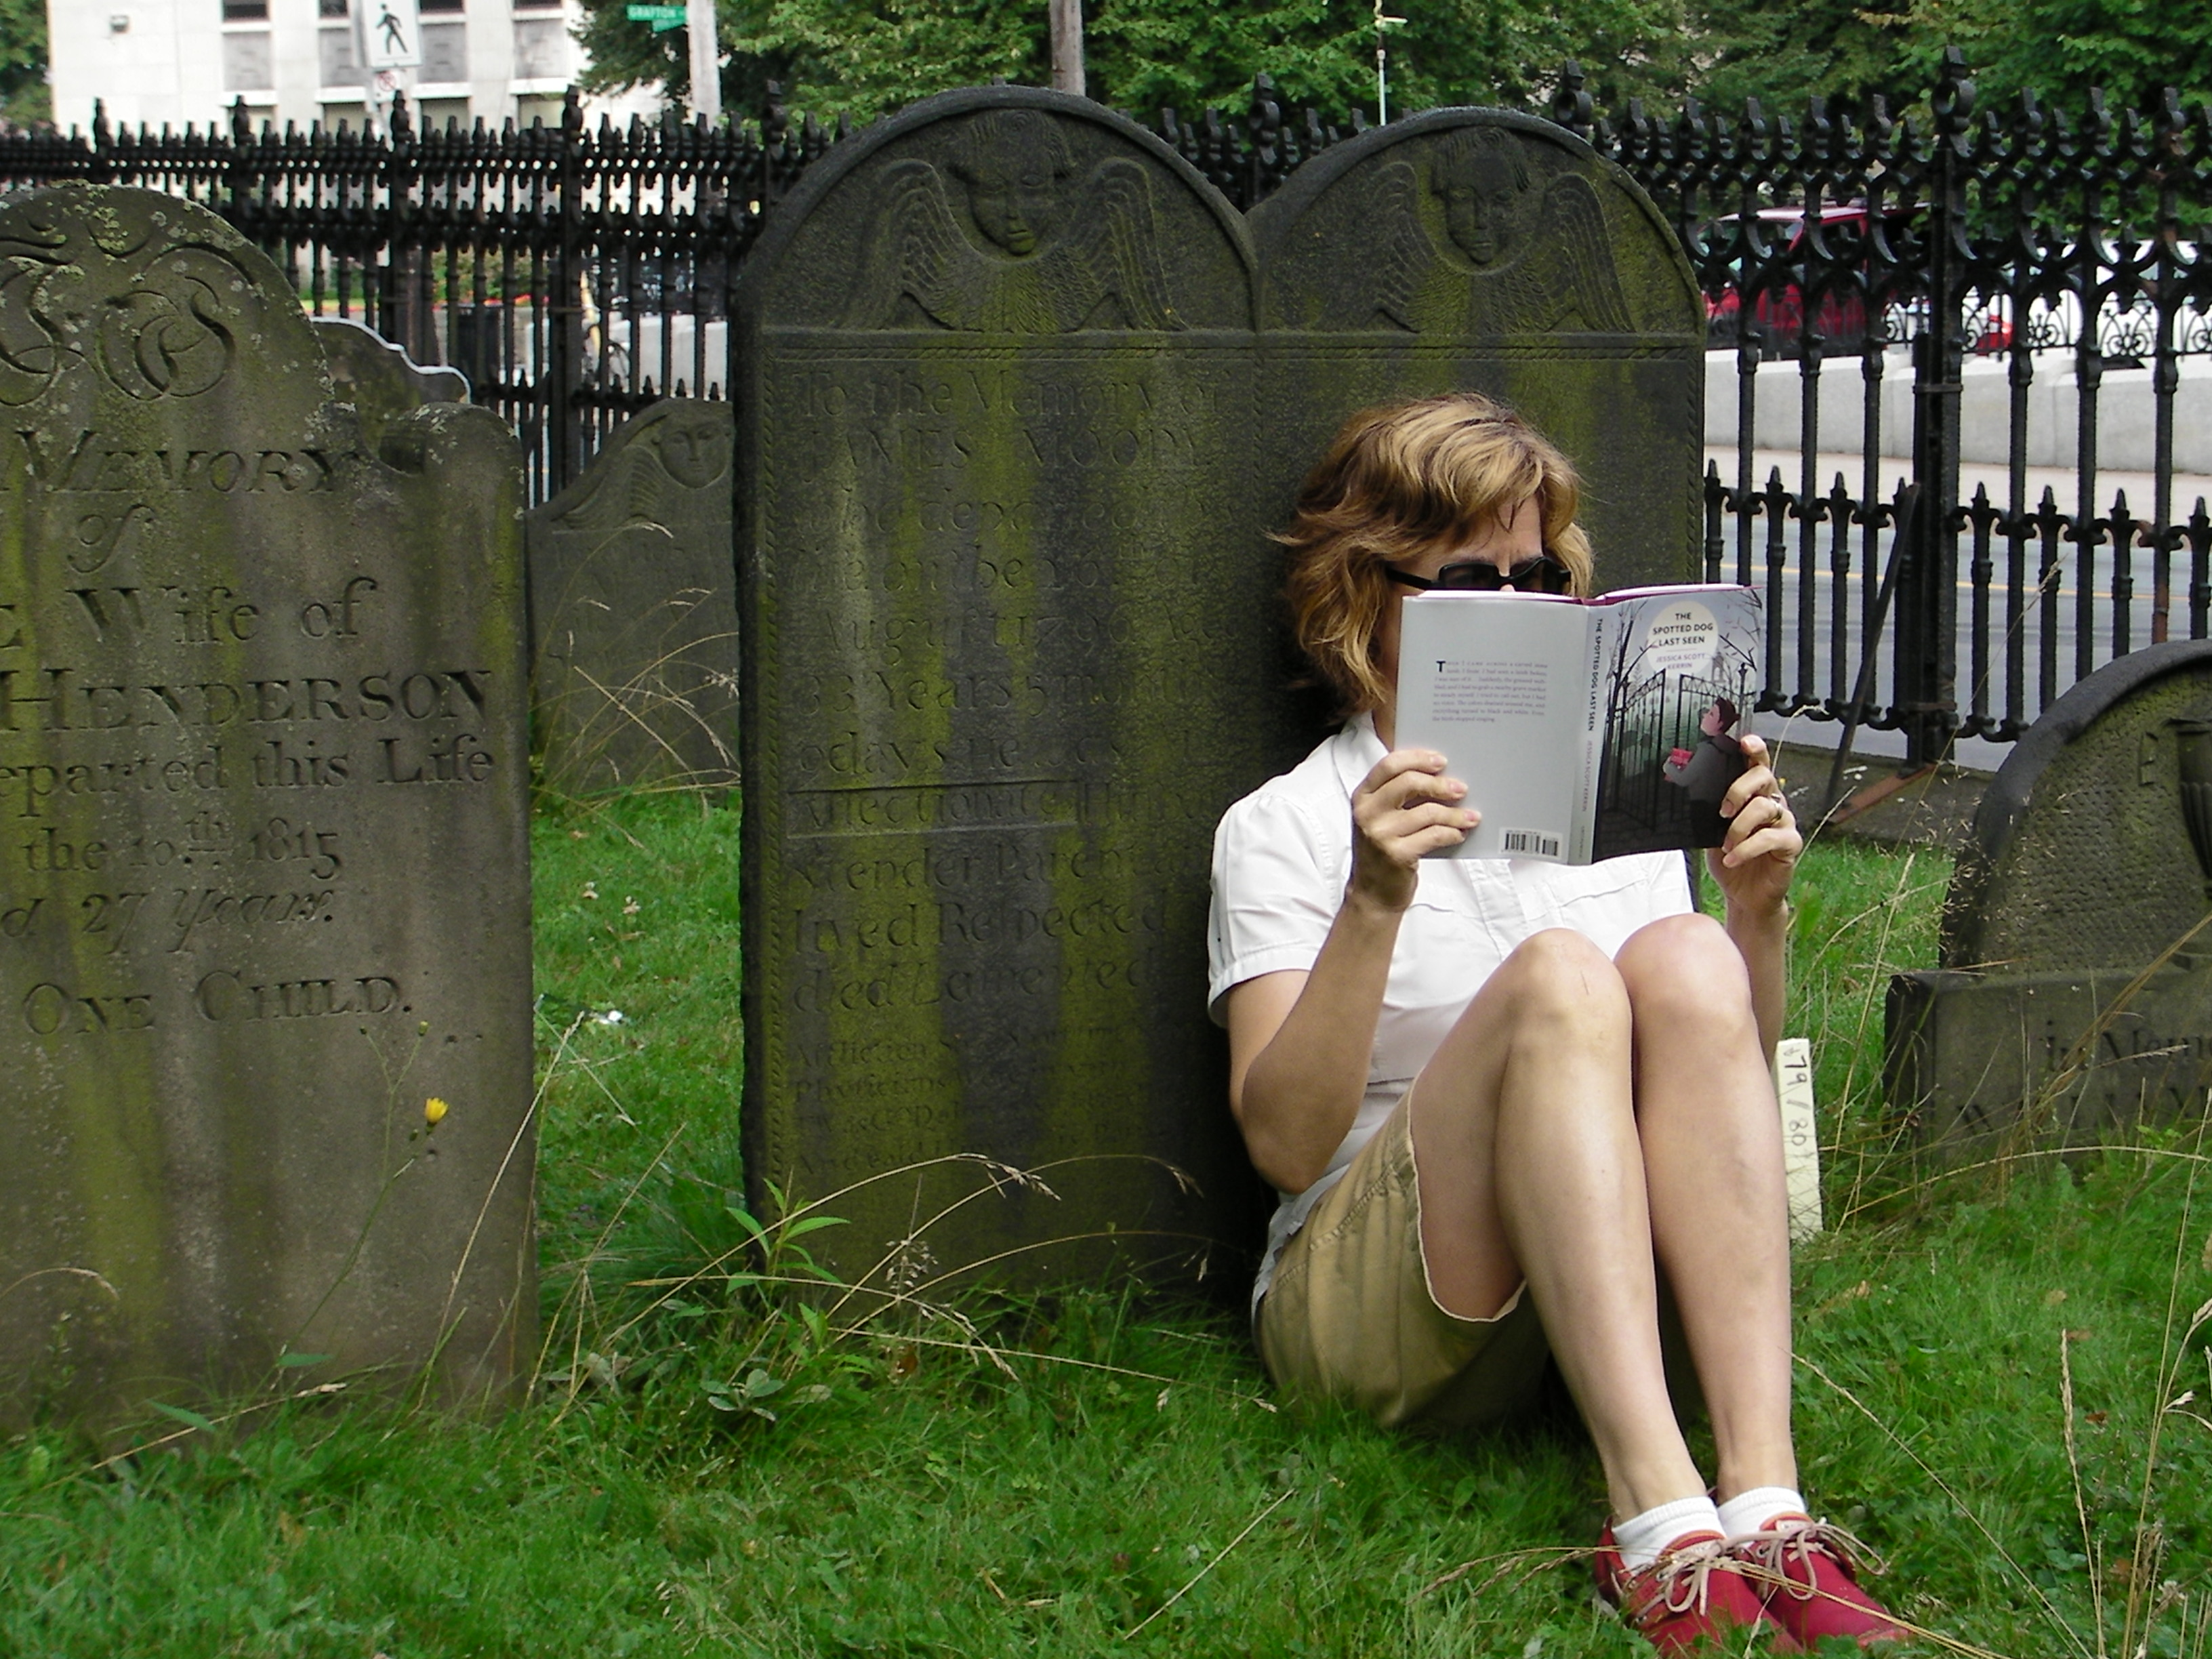 Jessica Scott Kerrin reads The Spotted Dog Last Seen beside the gravestone that inspired her to write it.